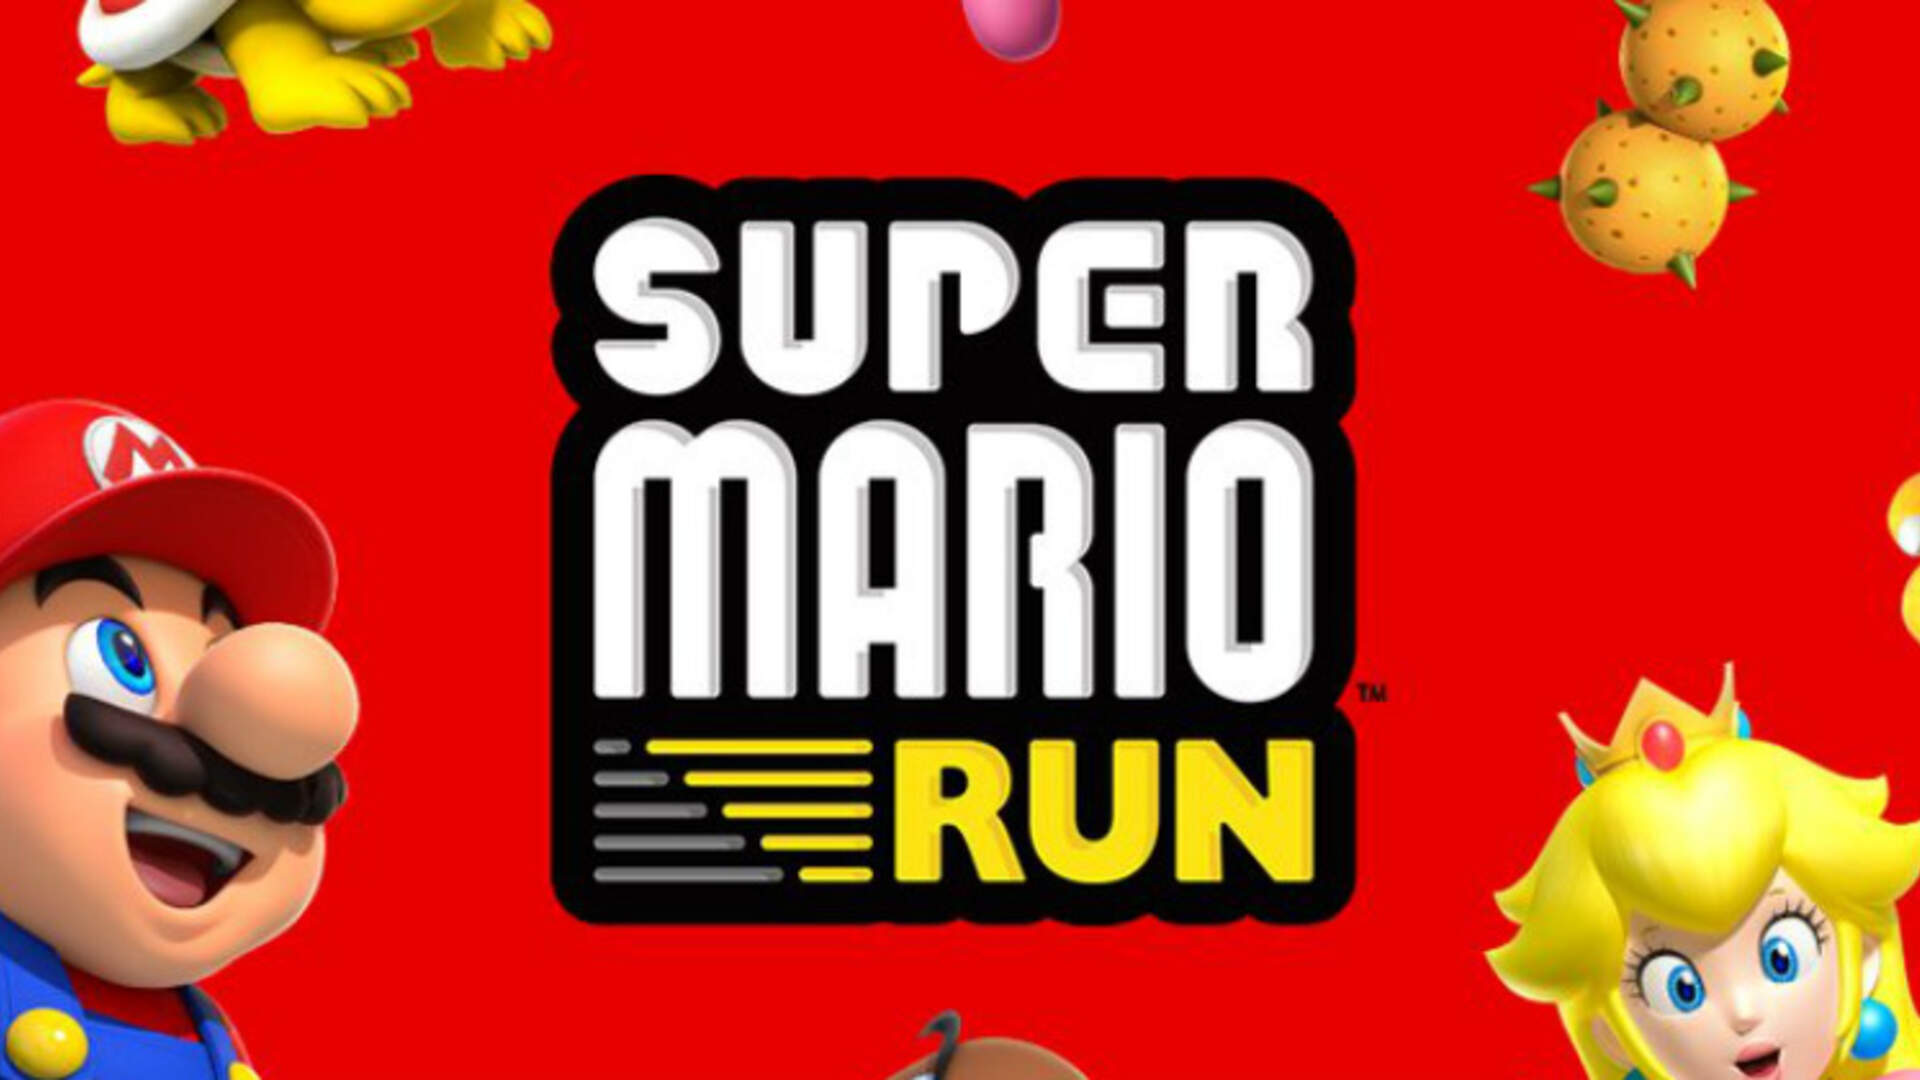 Super Mario Run's Pricing Takes Hits From Consumers and Investors